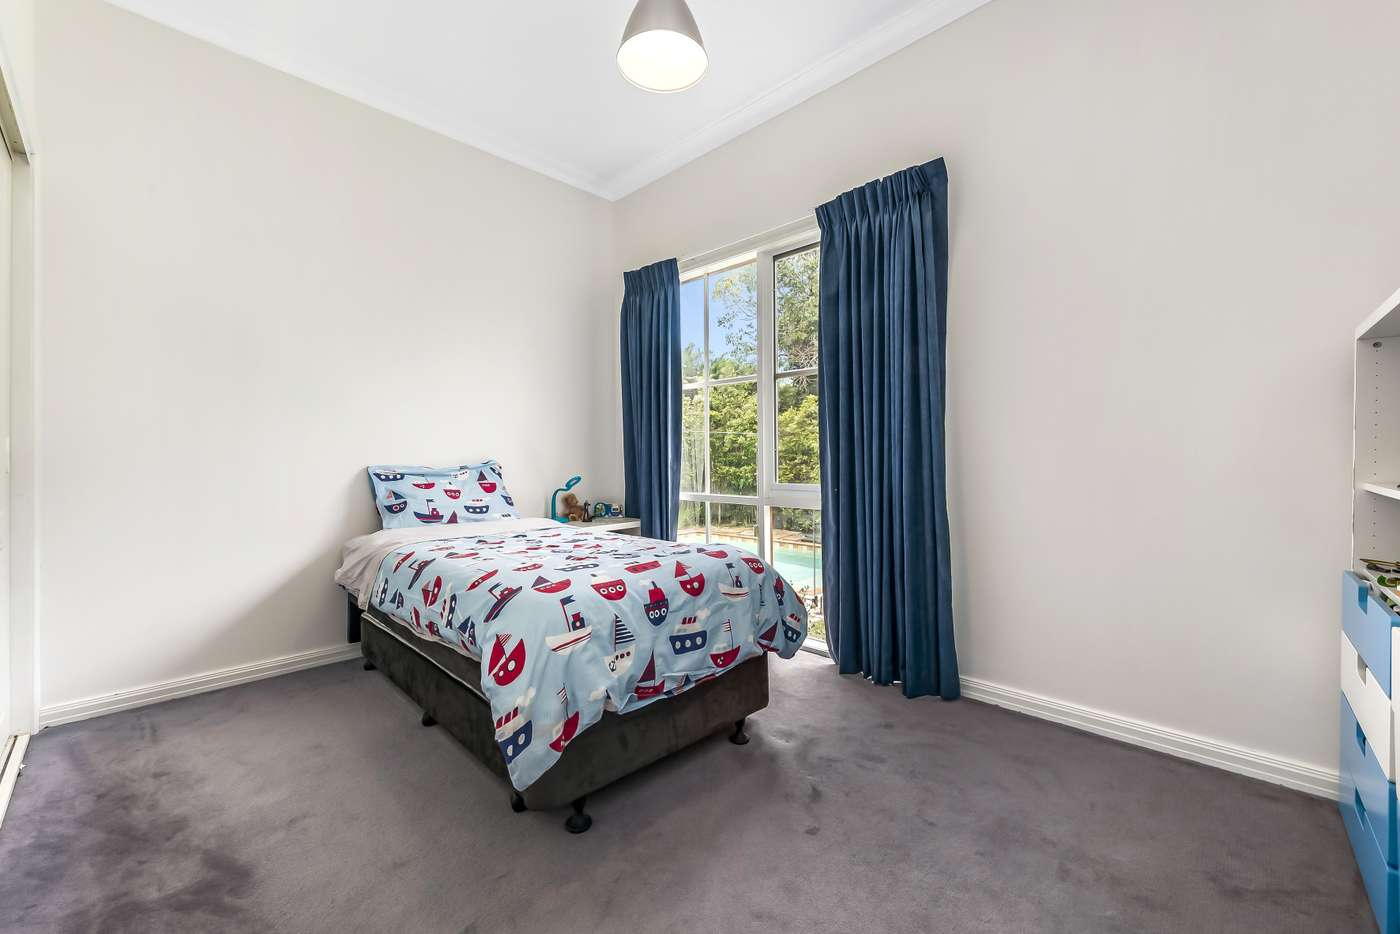 Seventh view of Homely house listing, 17 Kendall St, Hampton VIC 3188